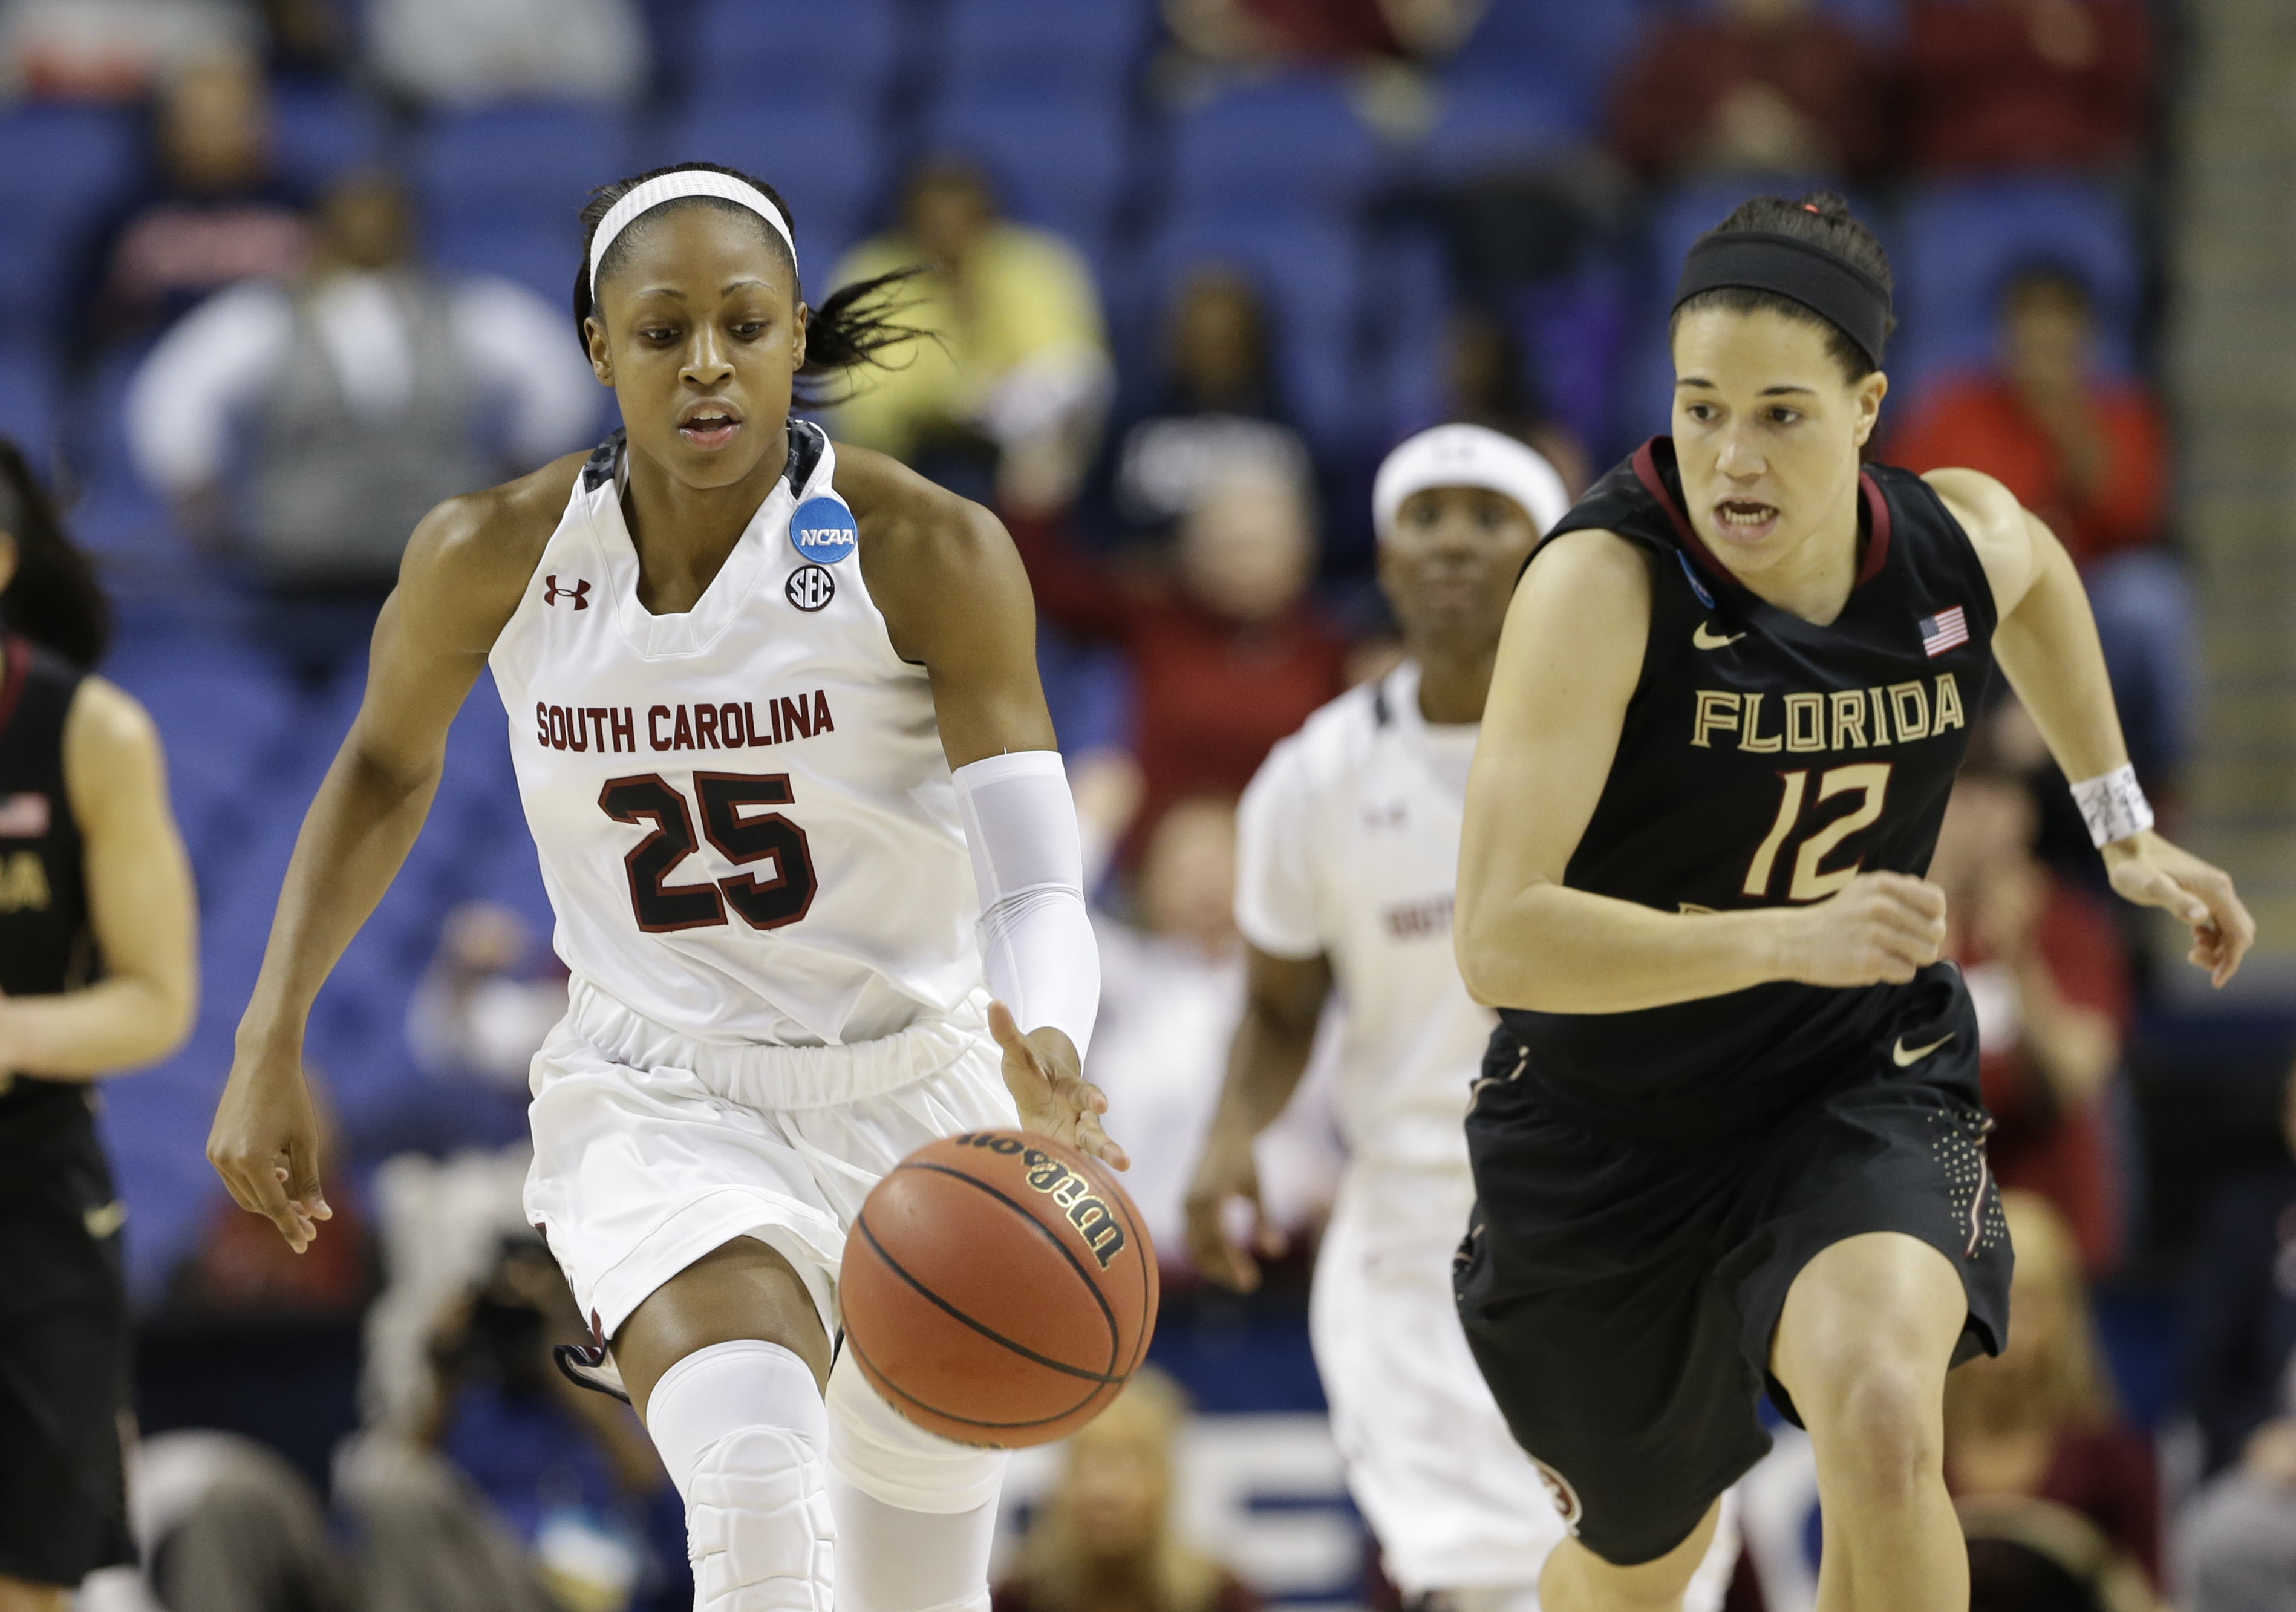 South Carolina's Tiffany Mitchell (25) dribbles as Florida State's Brittany Brown (12) chases during the second half of a women's college basketball regional final game in the NCAA Tournament in Greensboro, N.C., Sunday, March 29, 2015. South Carolina won